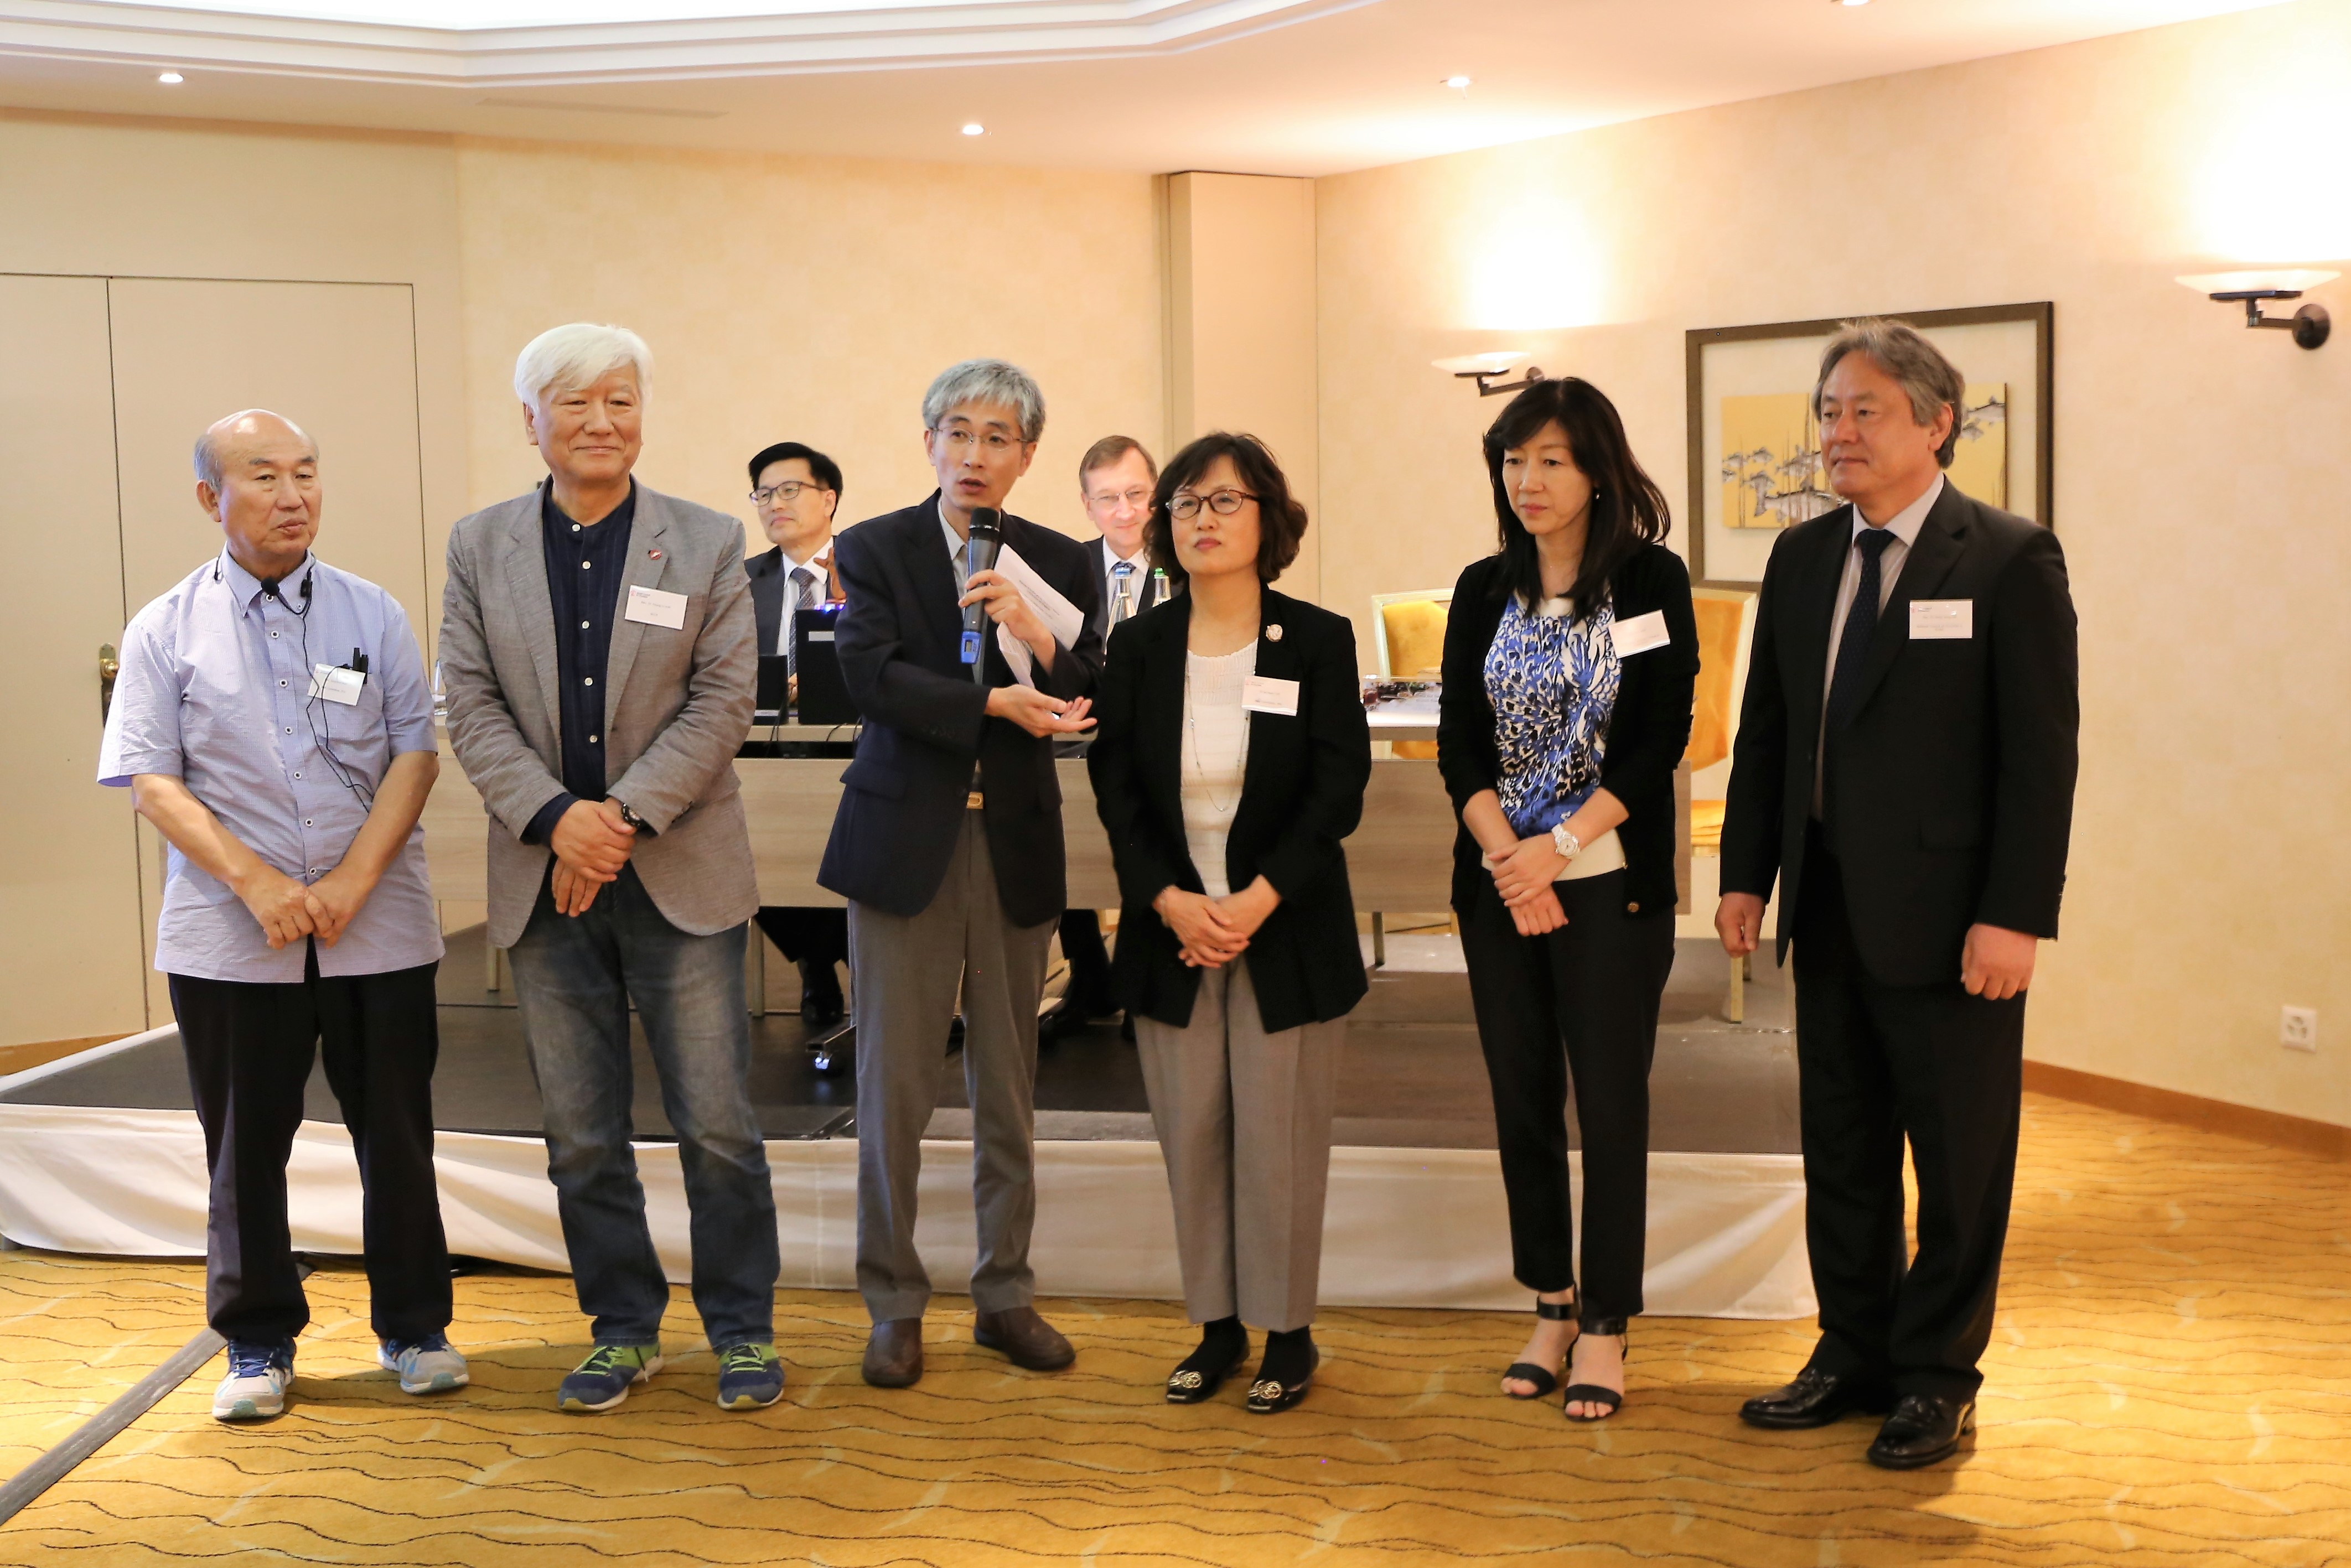 The members of the South Korean NCCK delegation are introduced.